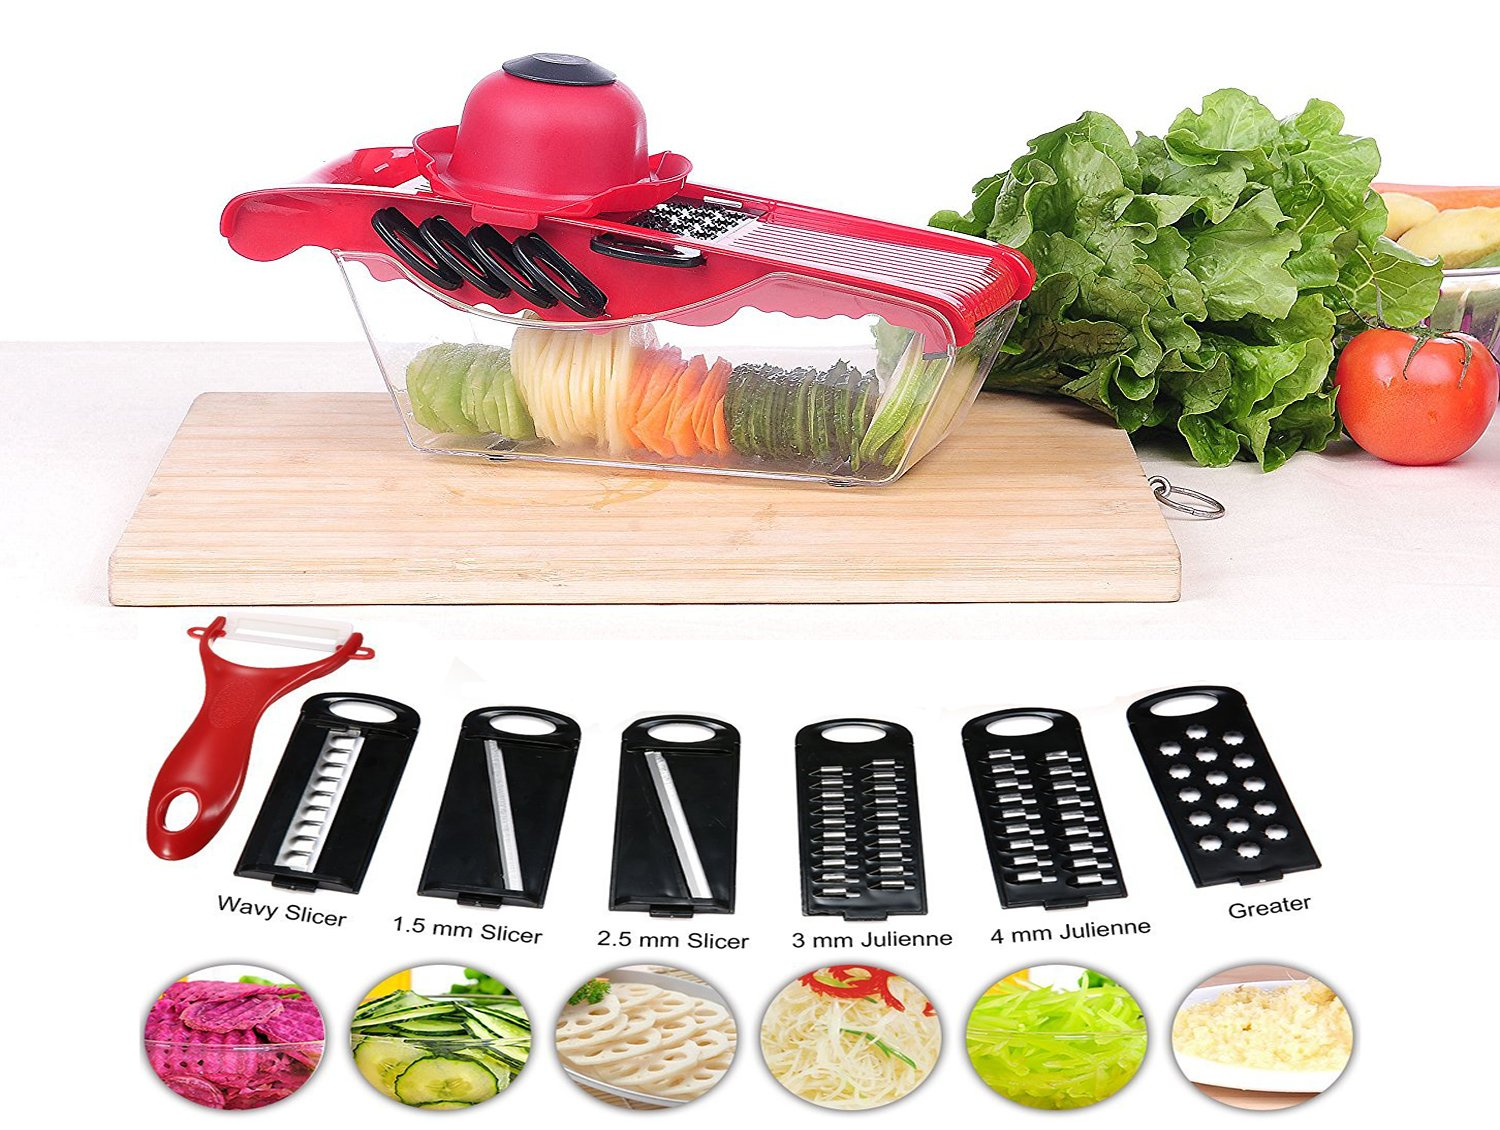 Spiralizer Vegetable Slicer Cutter-6 Interchangeable Blades with Peeler, Prevented slipping, Hand Protector,Storage Container - Cutter for Potato,carrots, Onion, Cucumber,Cheese etc Nagolife